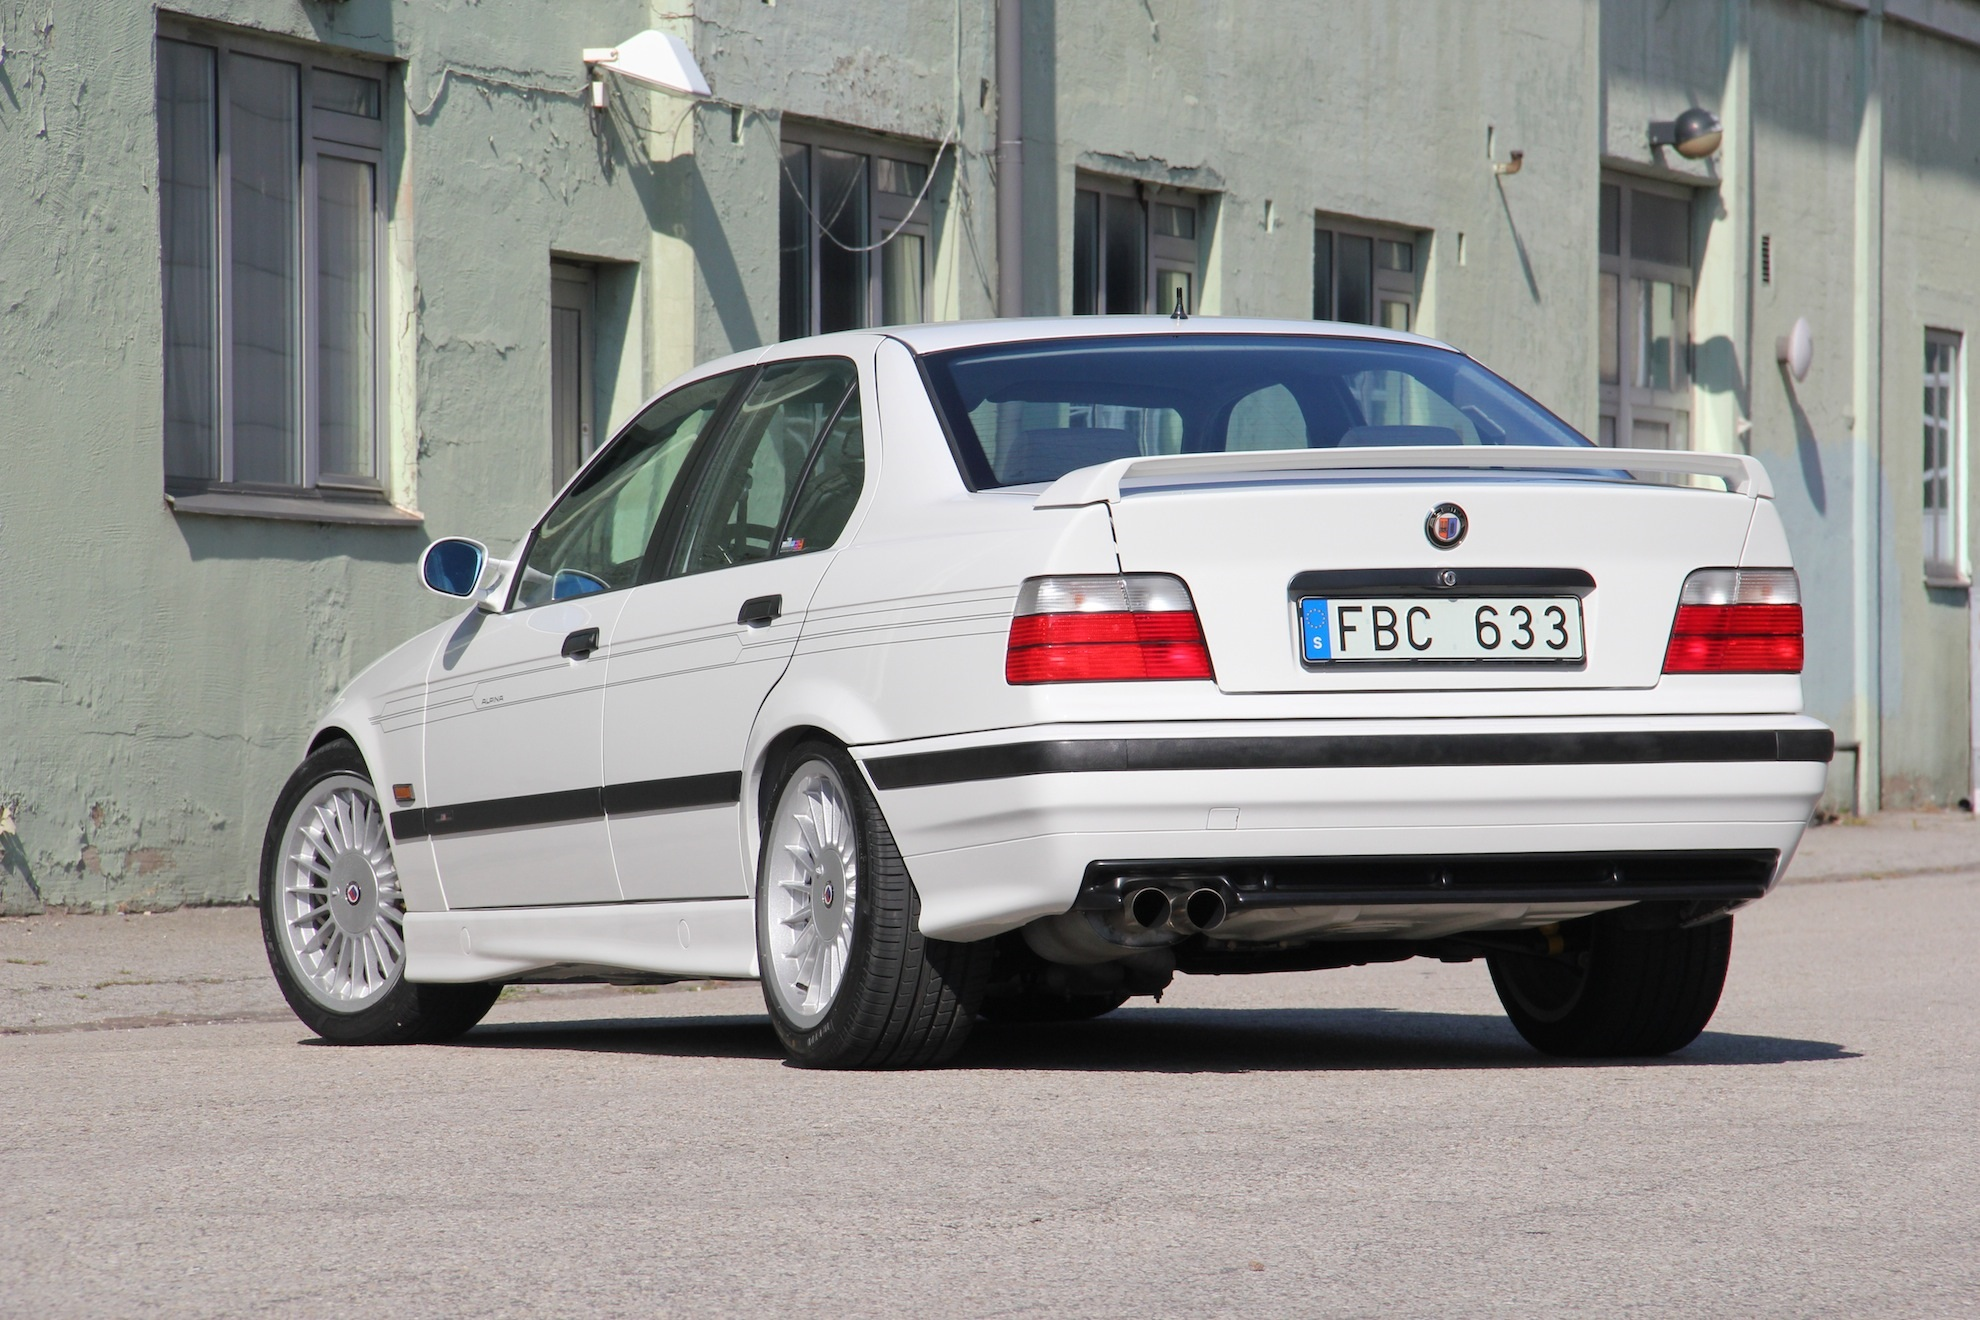 For Sale Alpina B BMW M Forum And M Forums - Bmw b3 alpina for sale